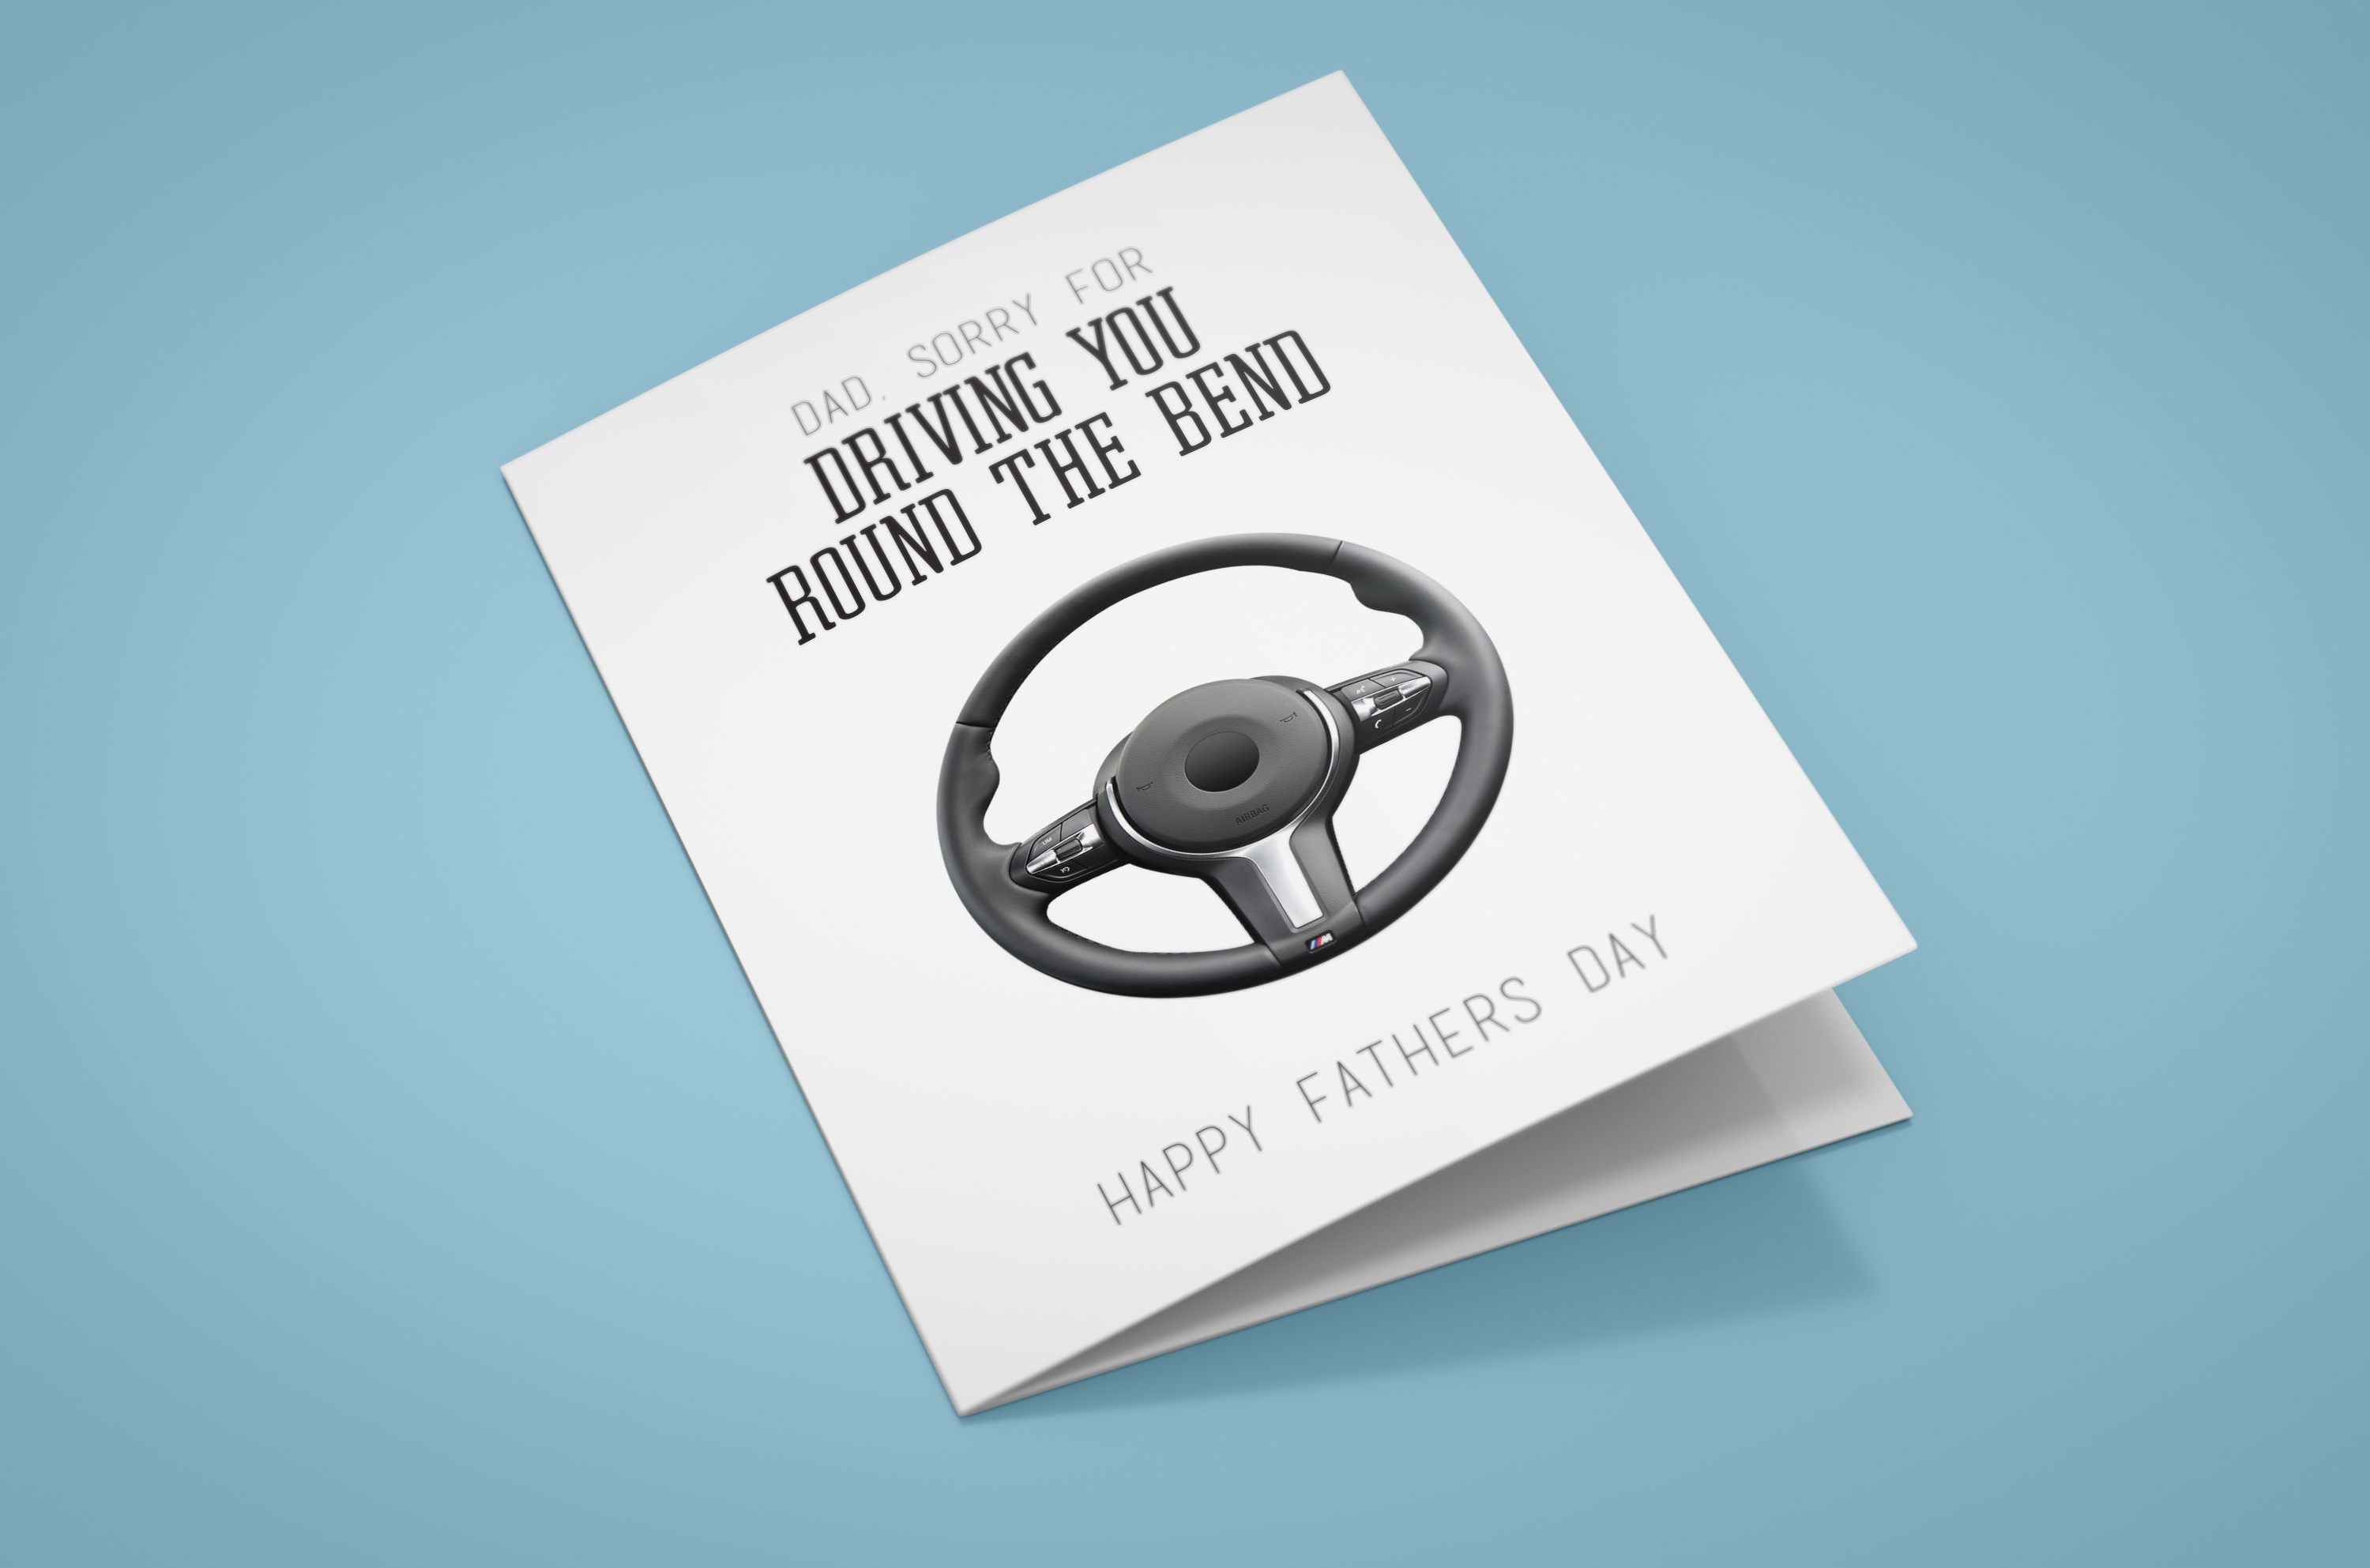 Free Steering Wheel fathers day card